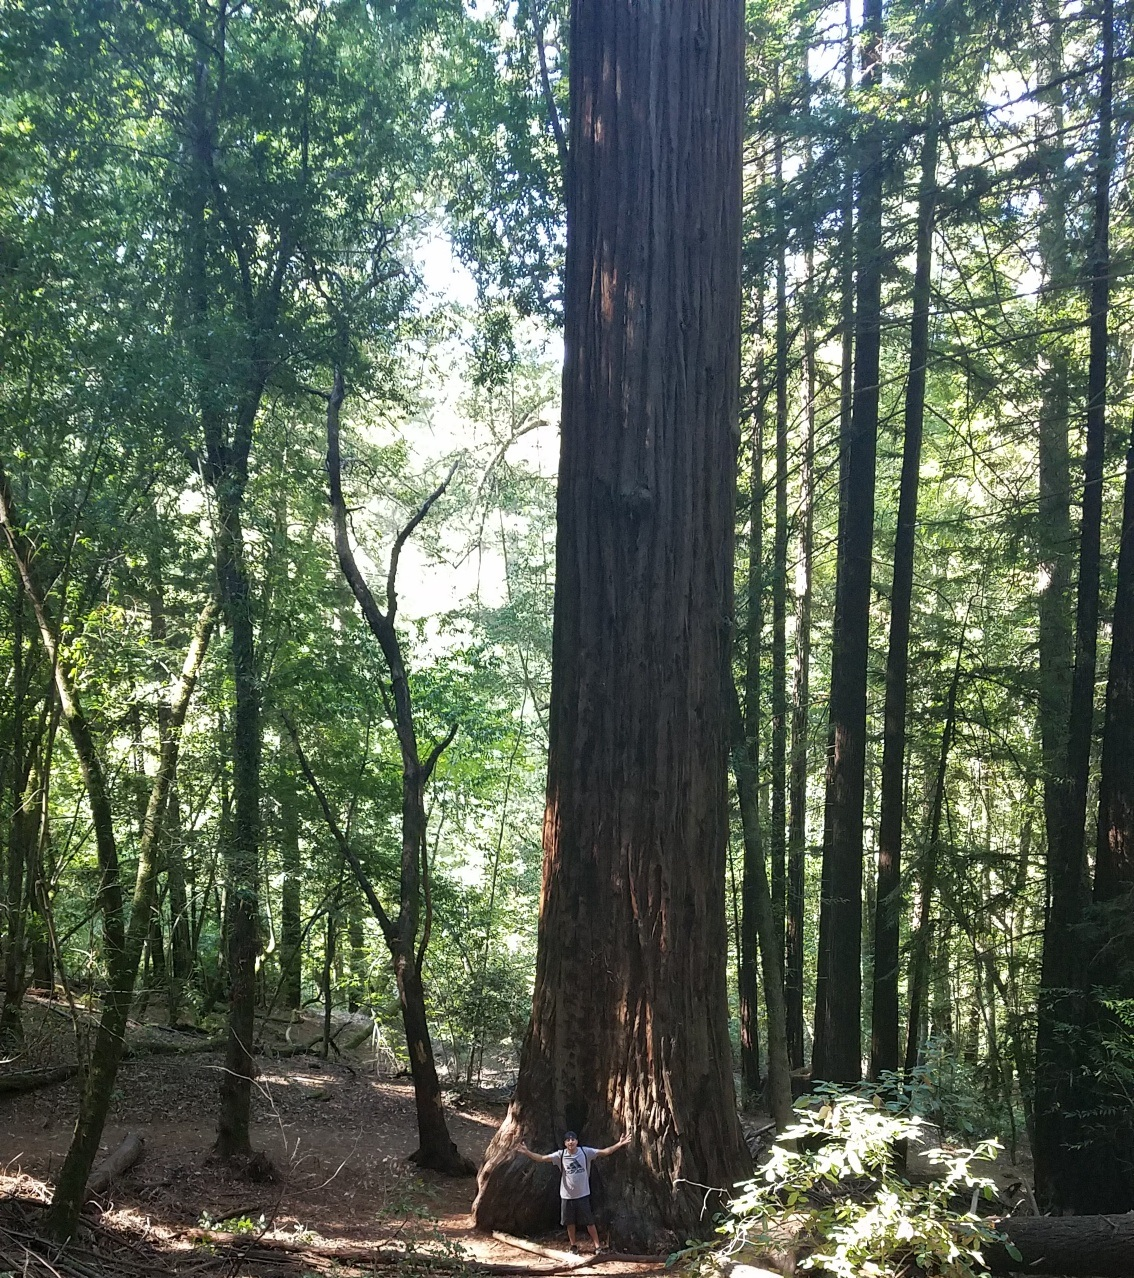 Edward Gutierrez standing at the base of a Giant Sequoia Tree in Armstrong Redwoods State Nature Reserve | October 2018